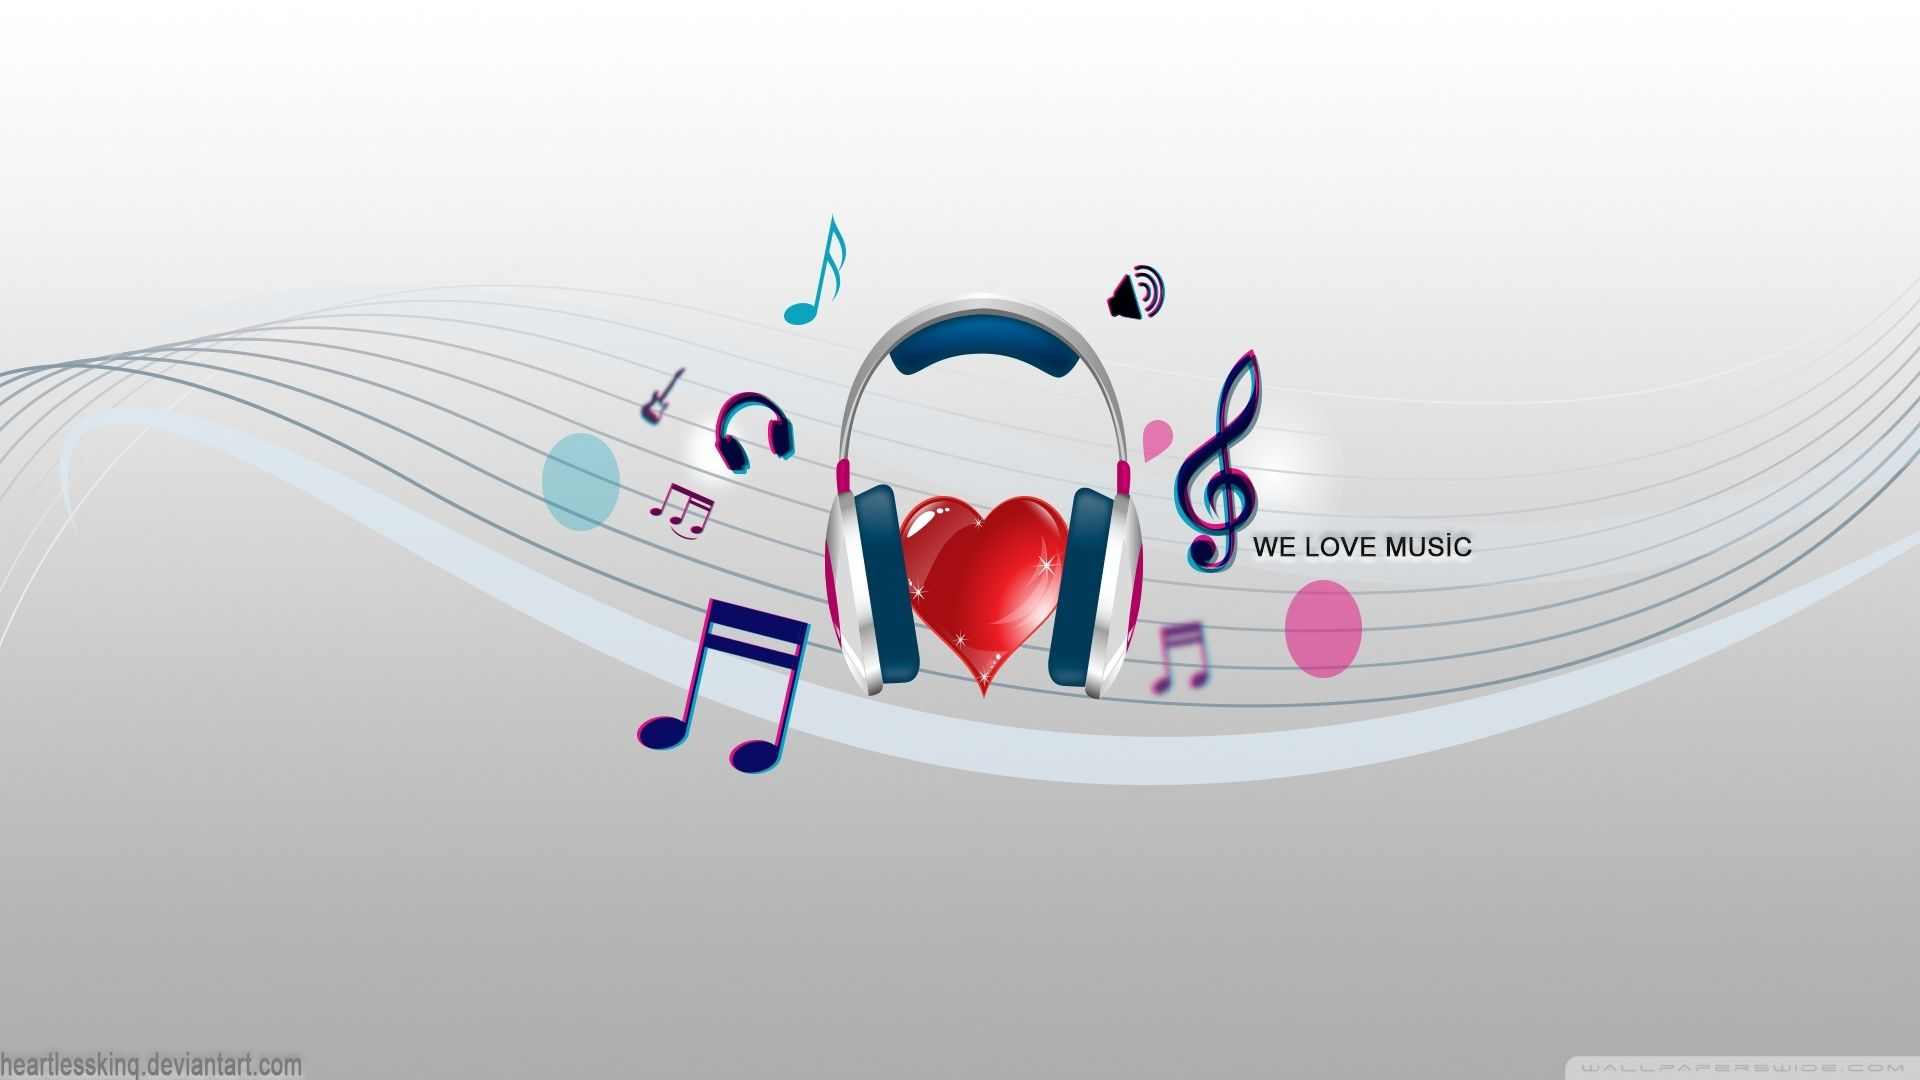 Download Hd Images Of I Love Music We Love Music Hd Desktop Wallpaper High Definition Mobile Within Hd Images Music Wallpaper My Images Music Lyrics Songs